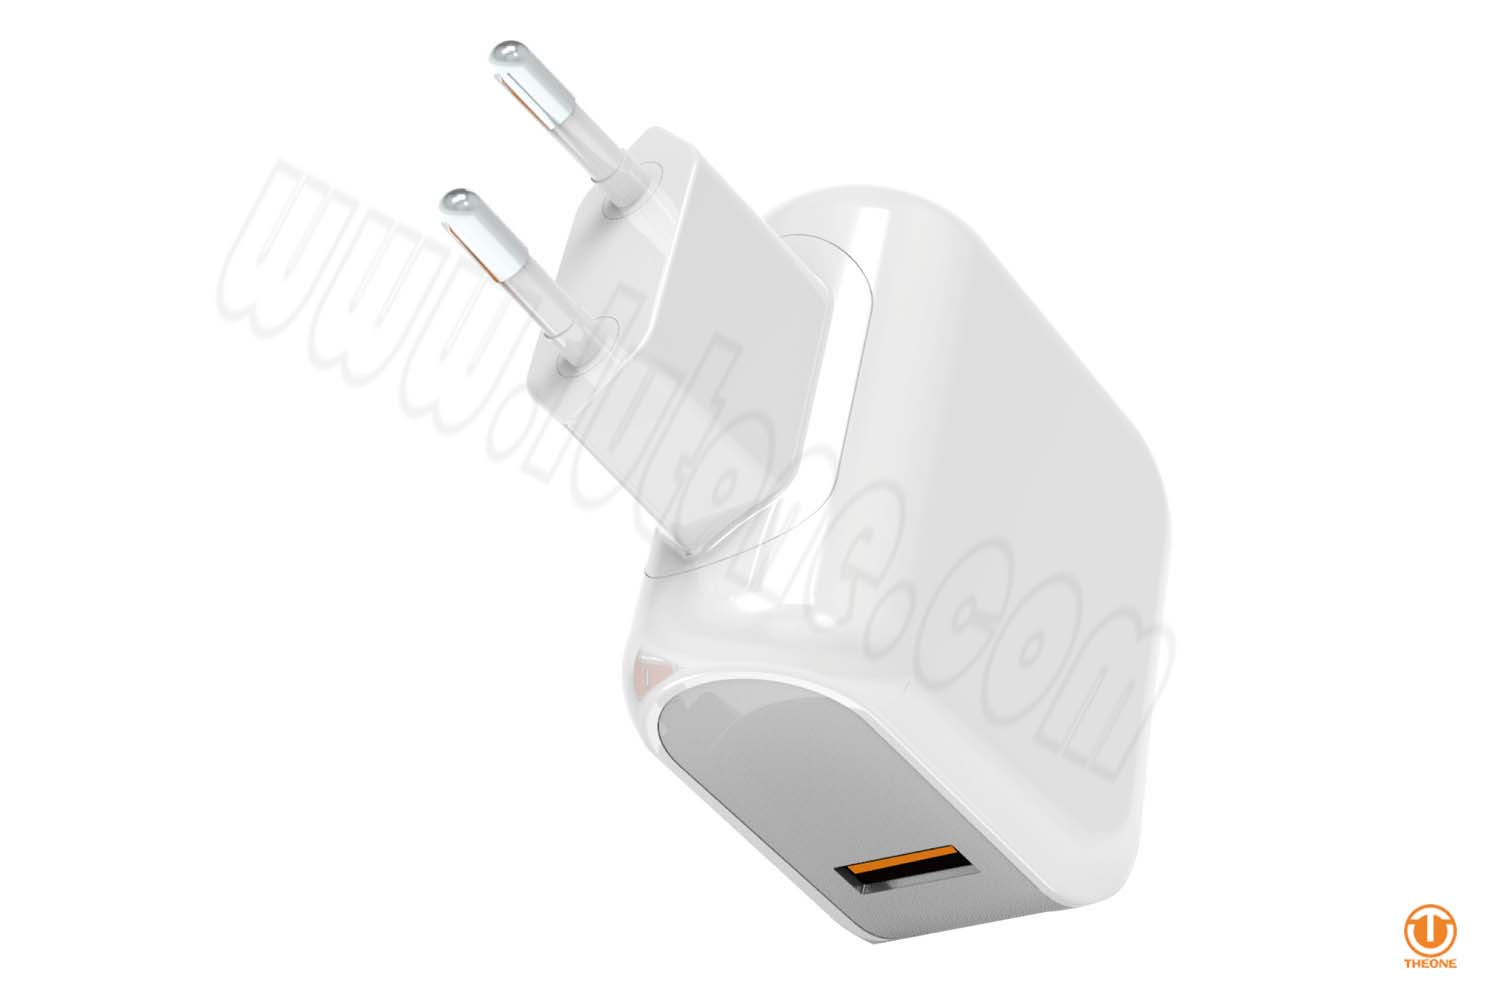 tq06b3-2 quick charger wall charger